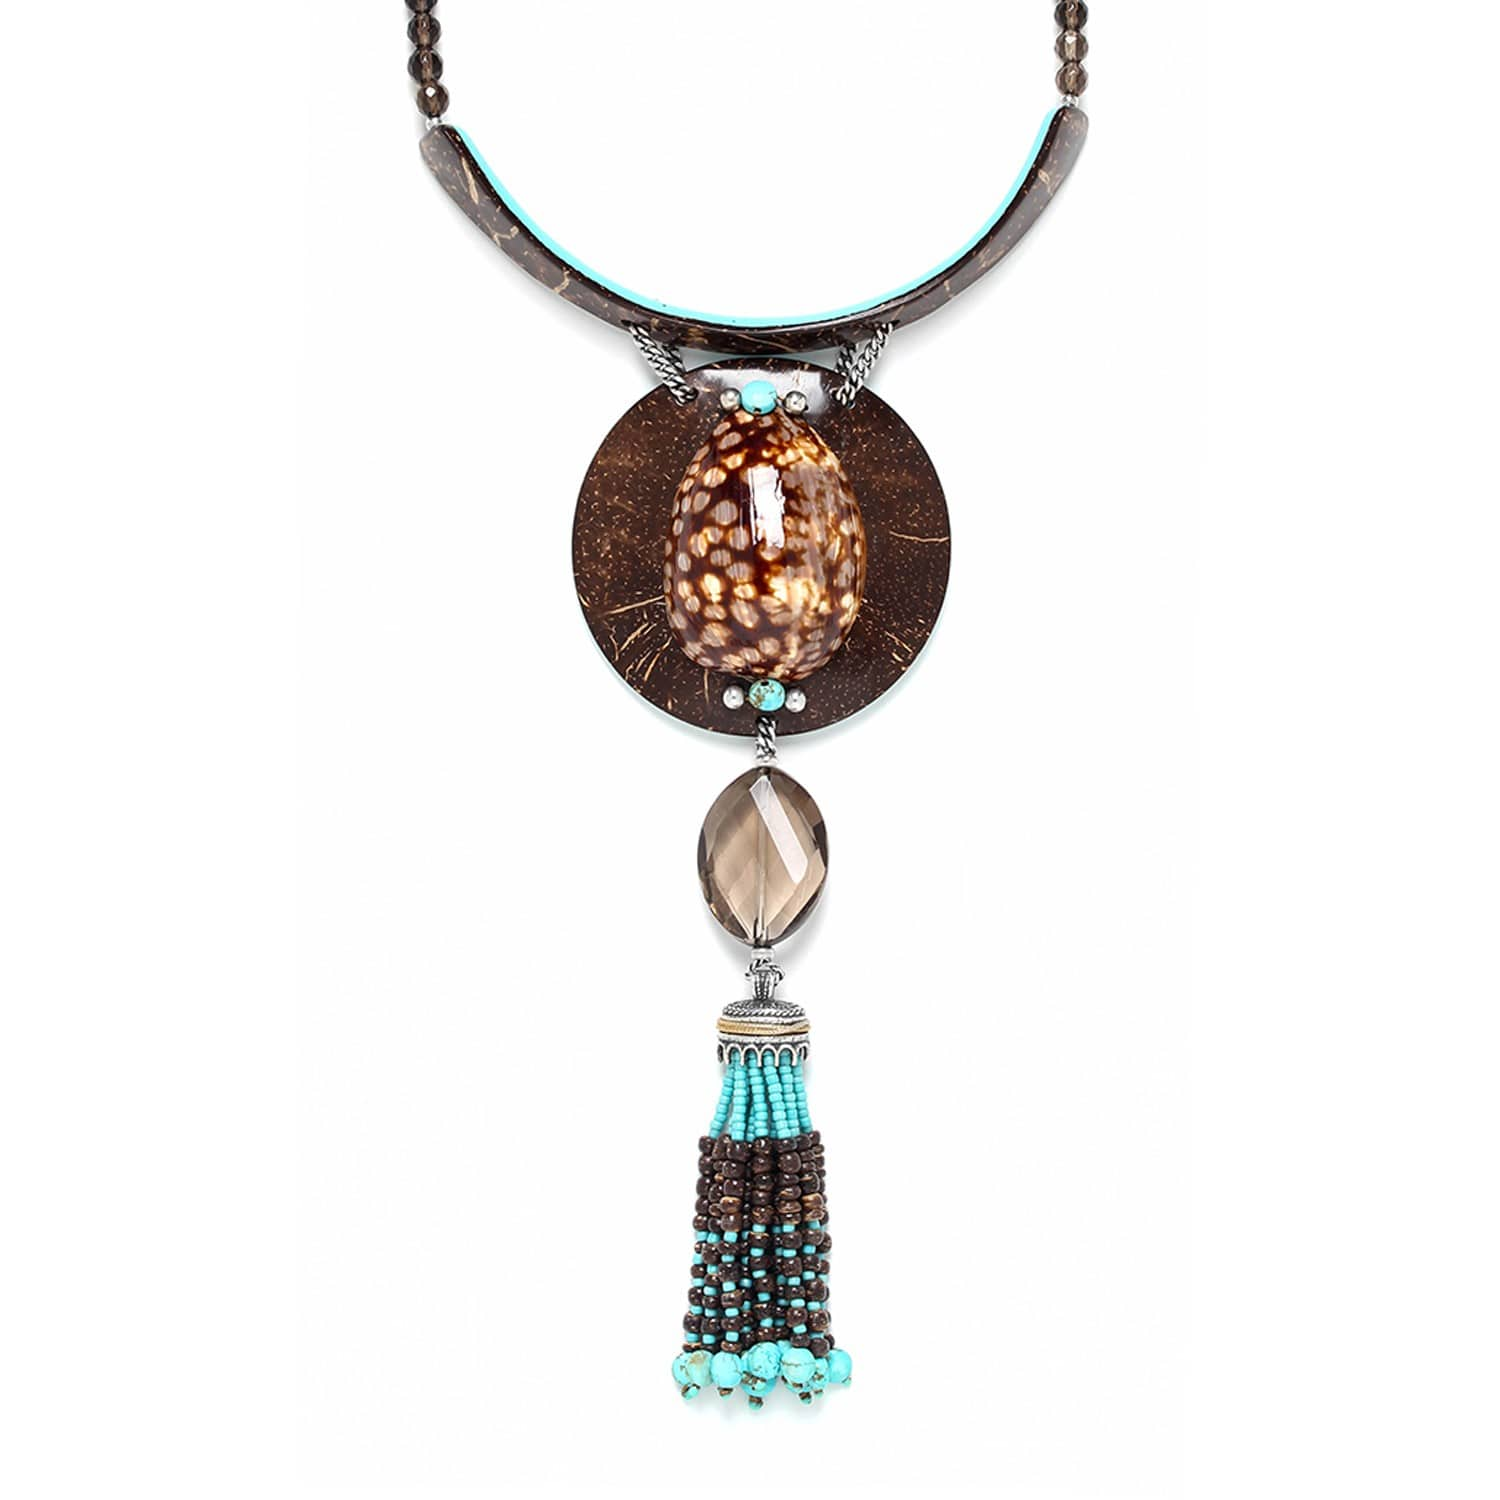 MARACAIBO large necklace with coconut and shell pendant and tassel